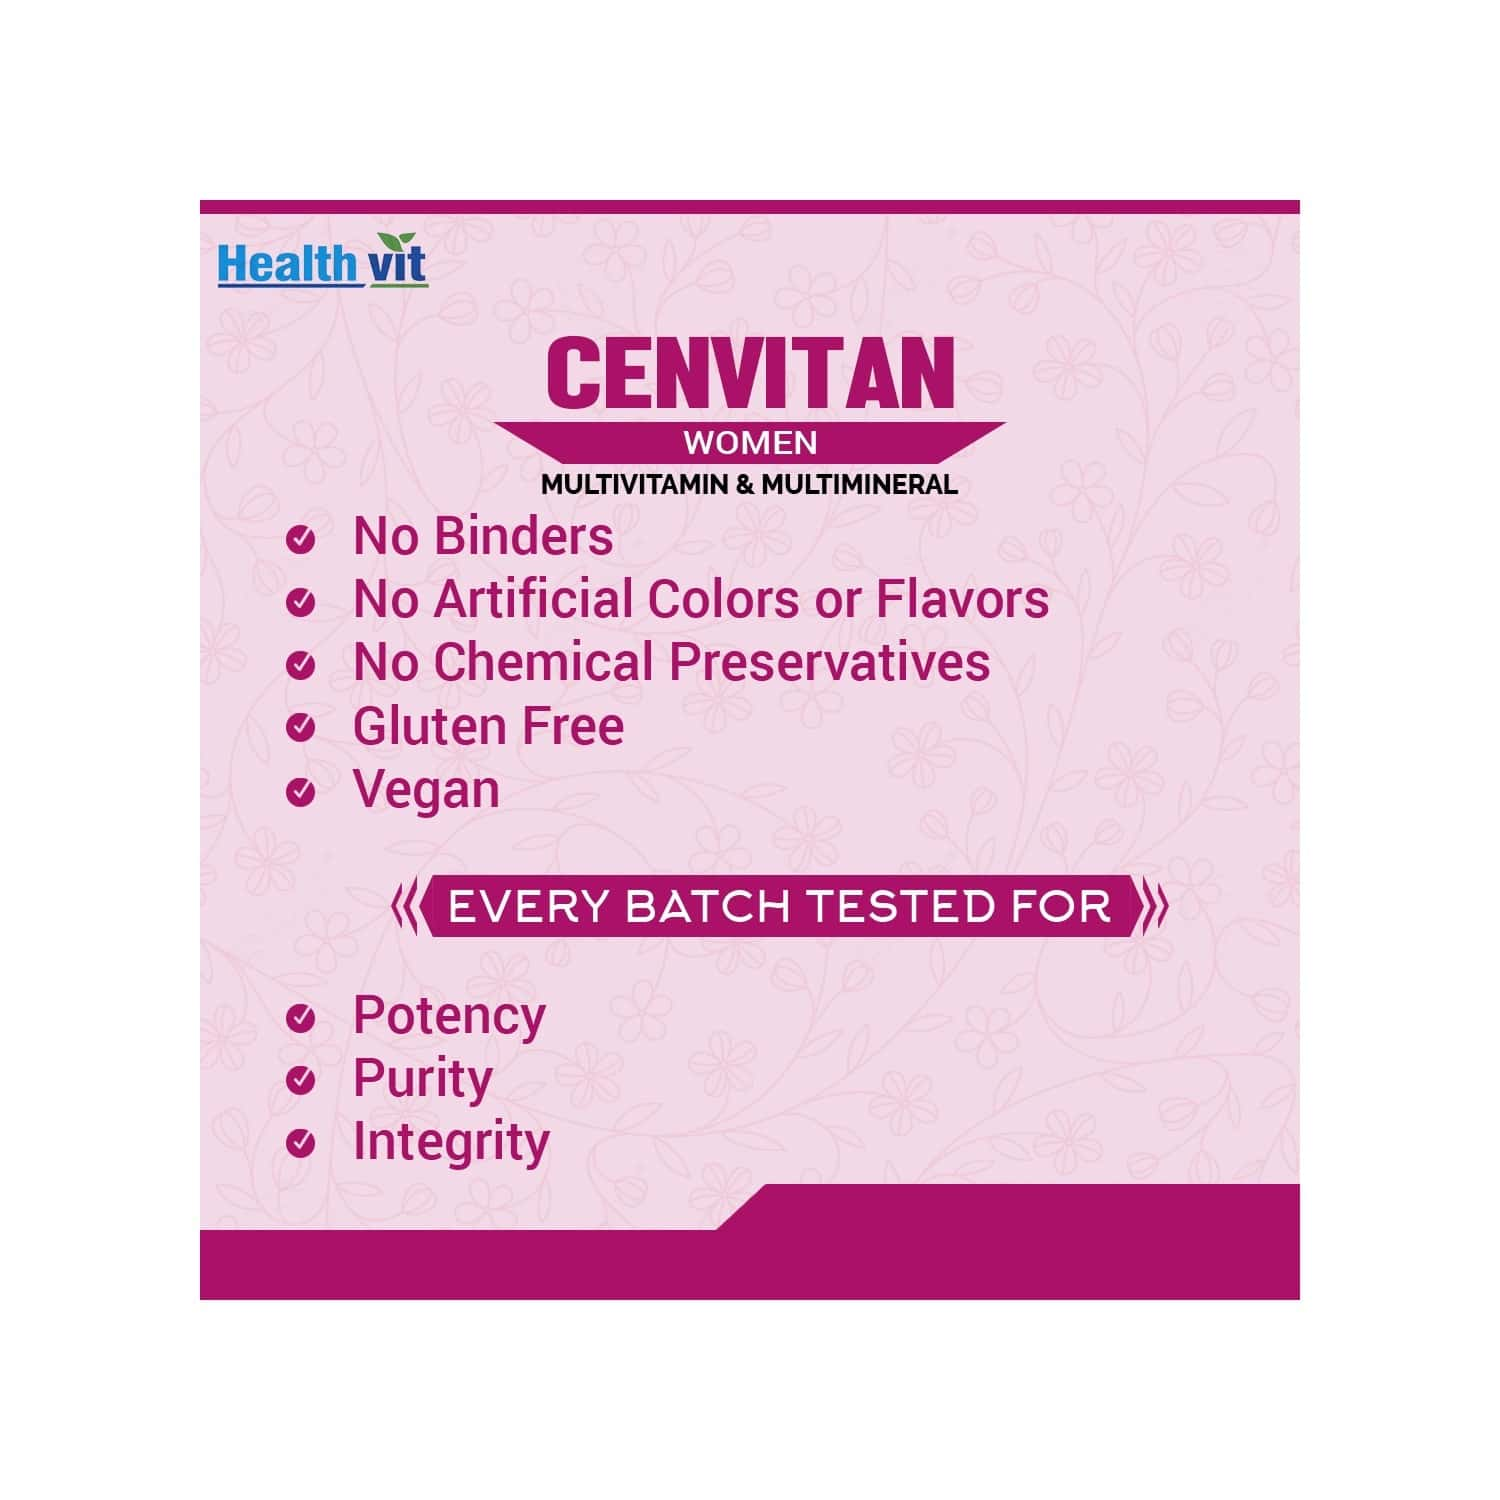 Healthvit Cenvitan Women 50+ ( Multivitamin & Multimineral ) - 60 Tablets